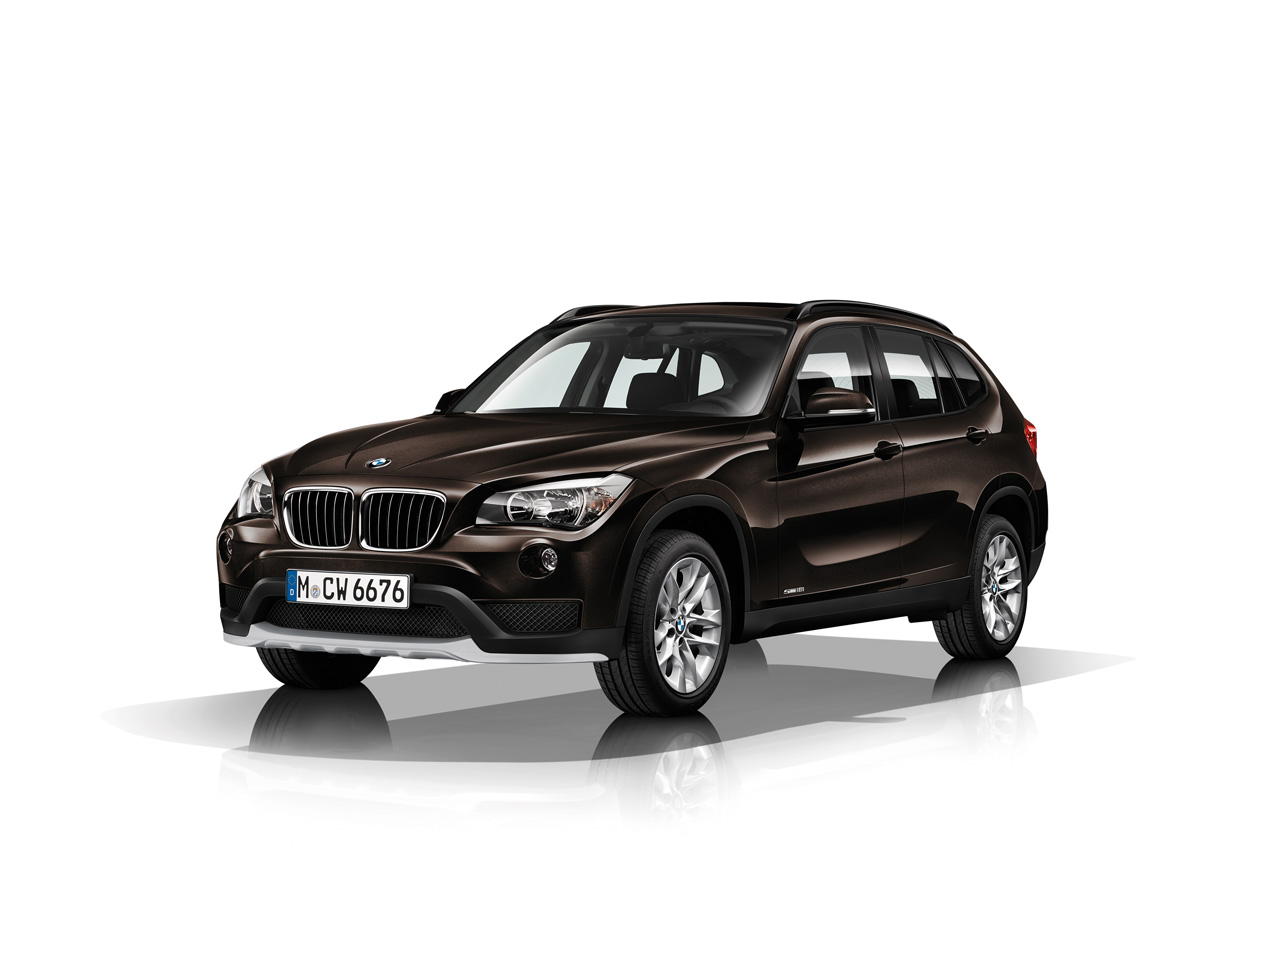 bmw x1 2014 images